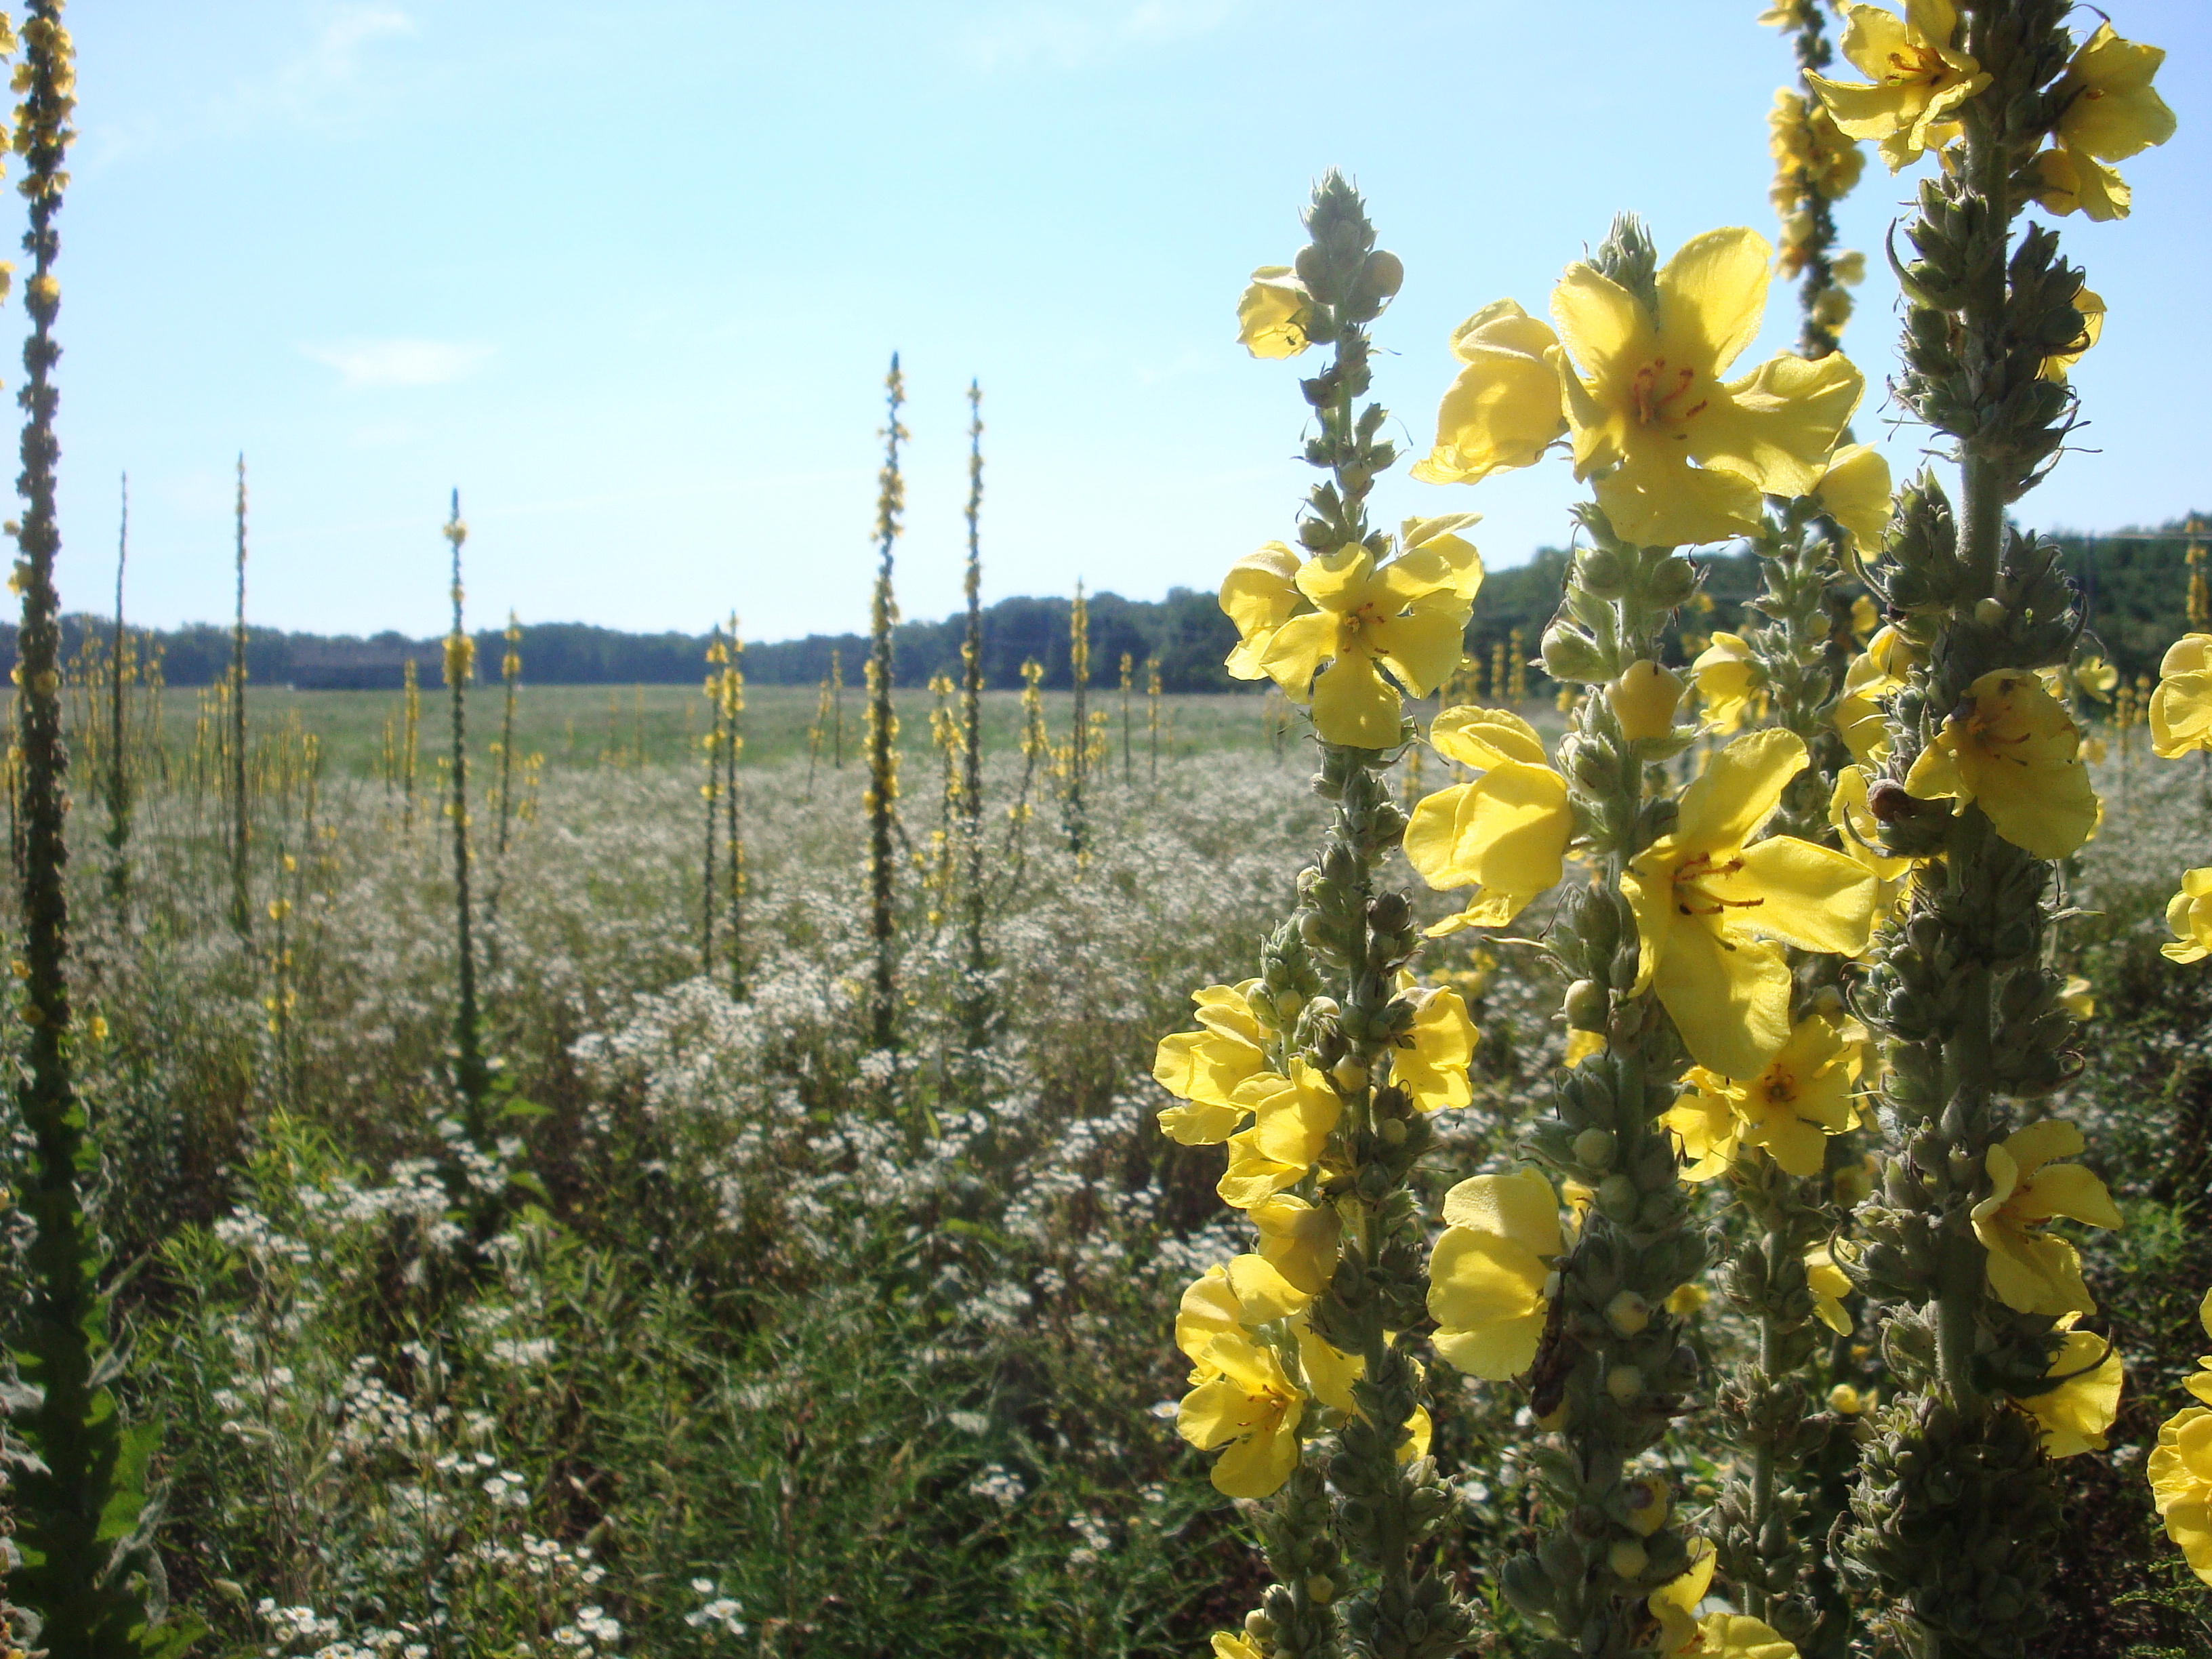 Spikes of Mullein (Verbascum thapsus) punctuate this fallow tobacco field in Simsbury, CT.